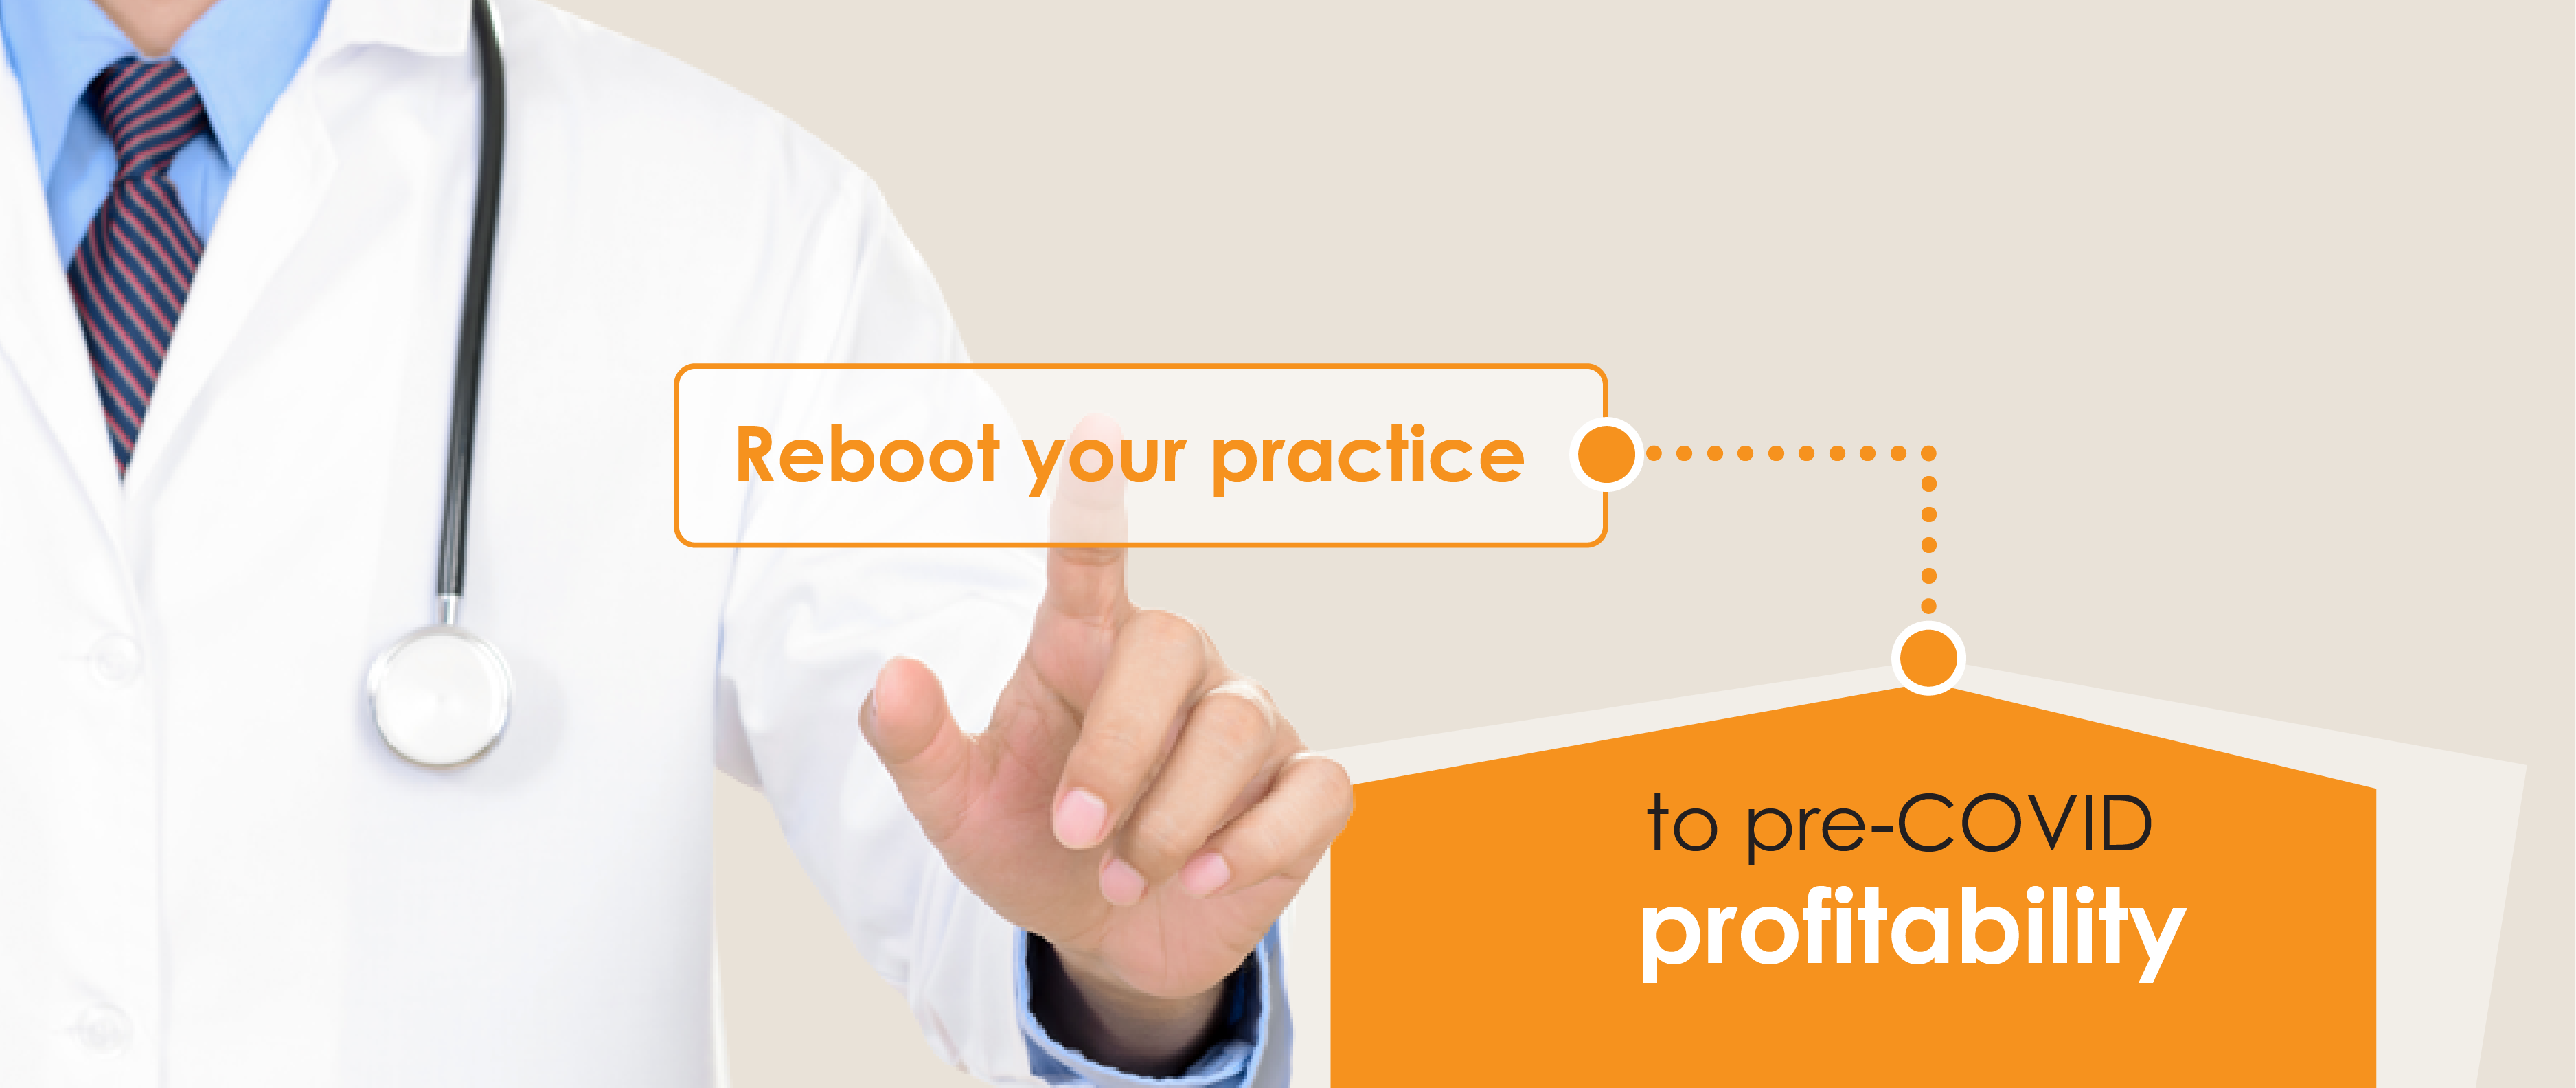 Reboot your practice to pre-COVID profitability